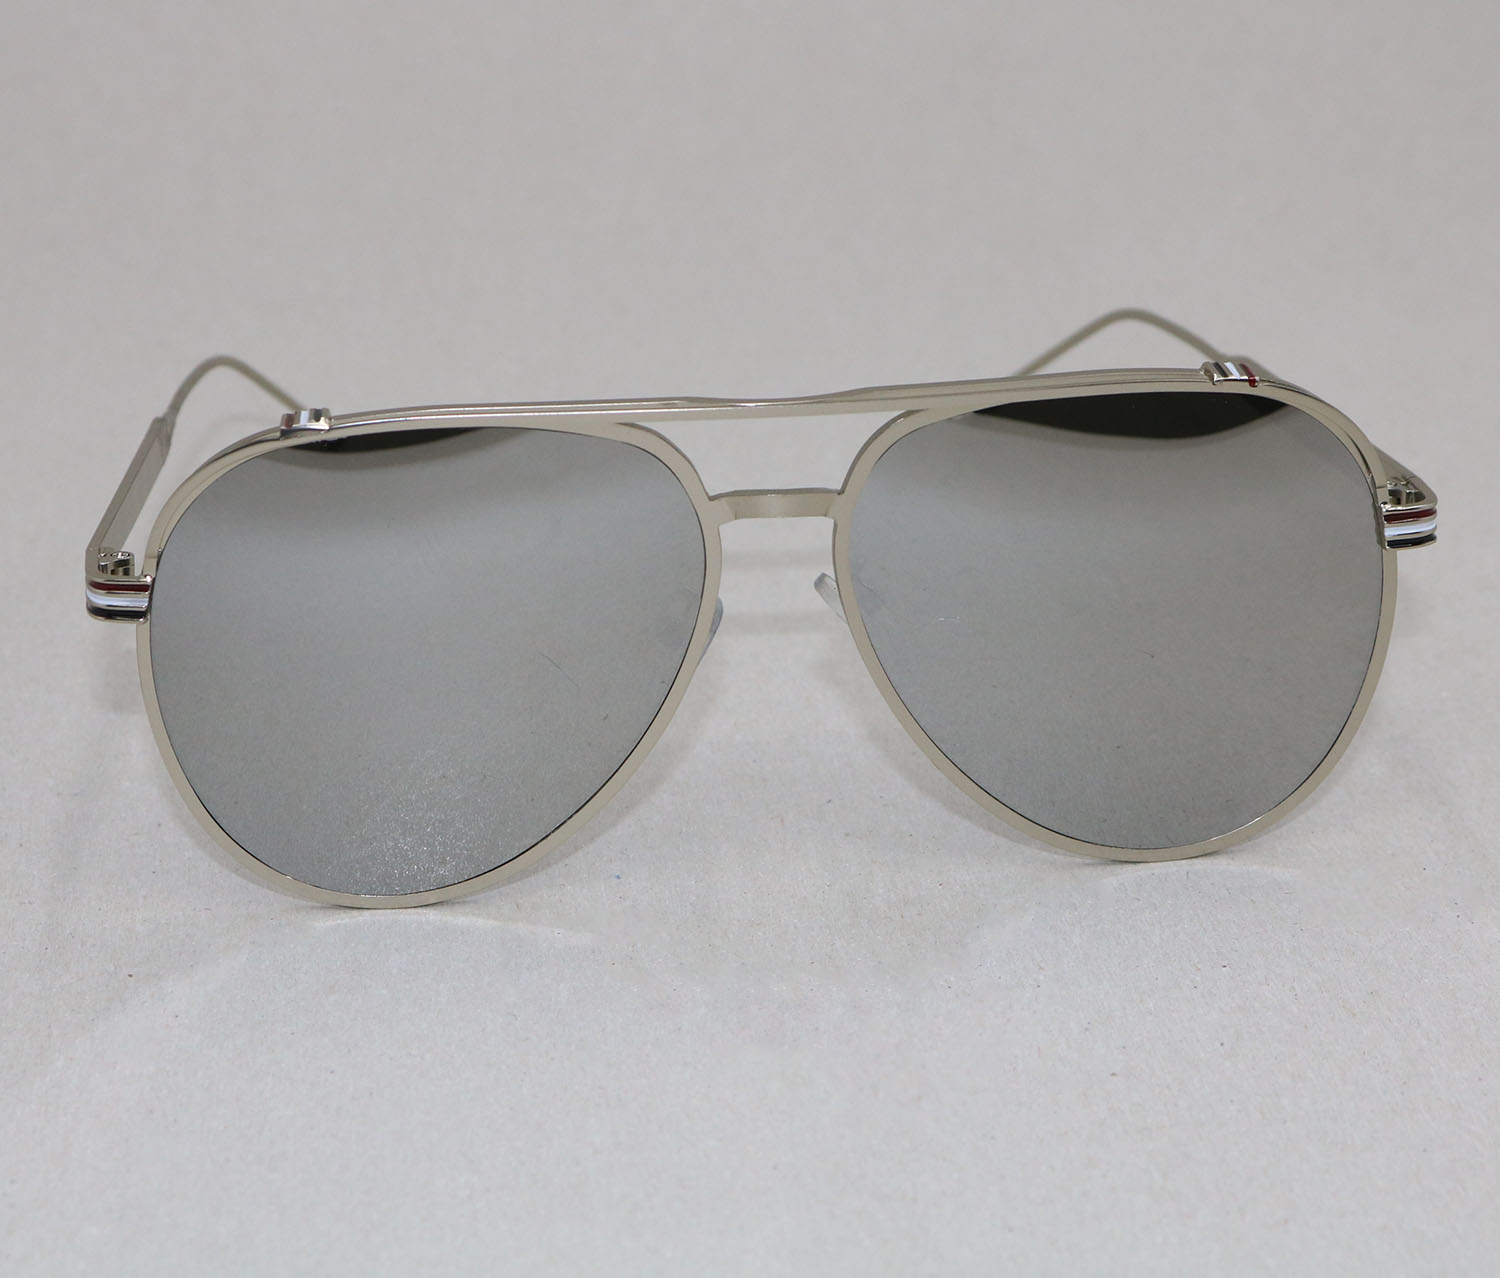 Double Bridge Metal Frame Sunglasses, Silver